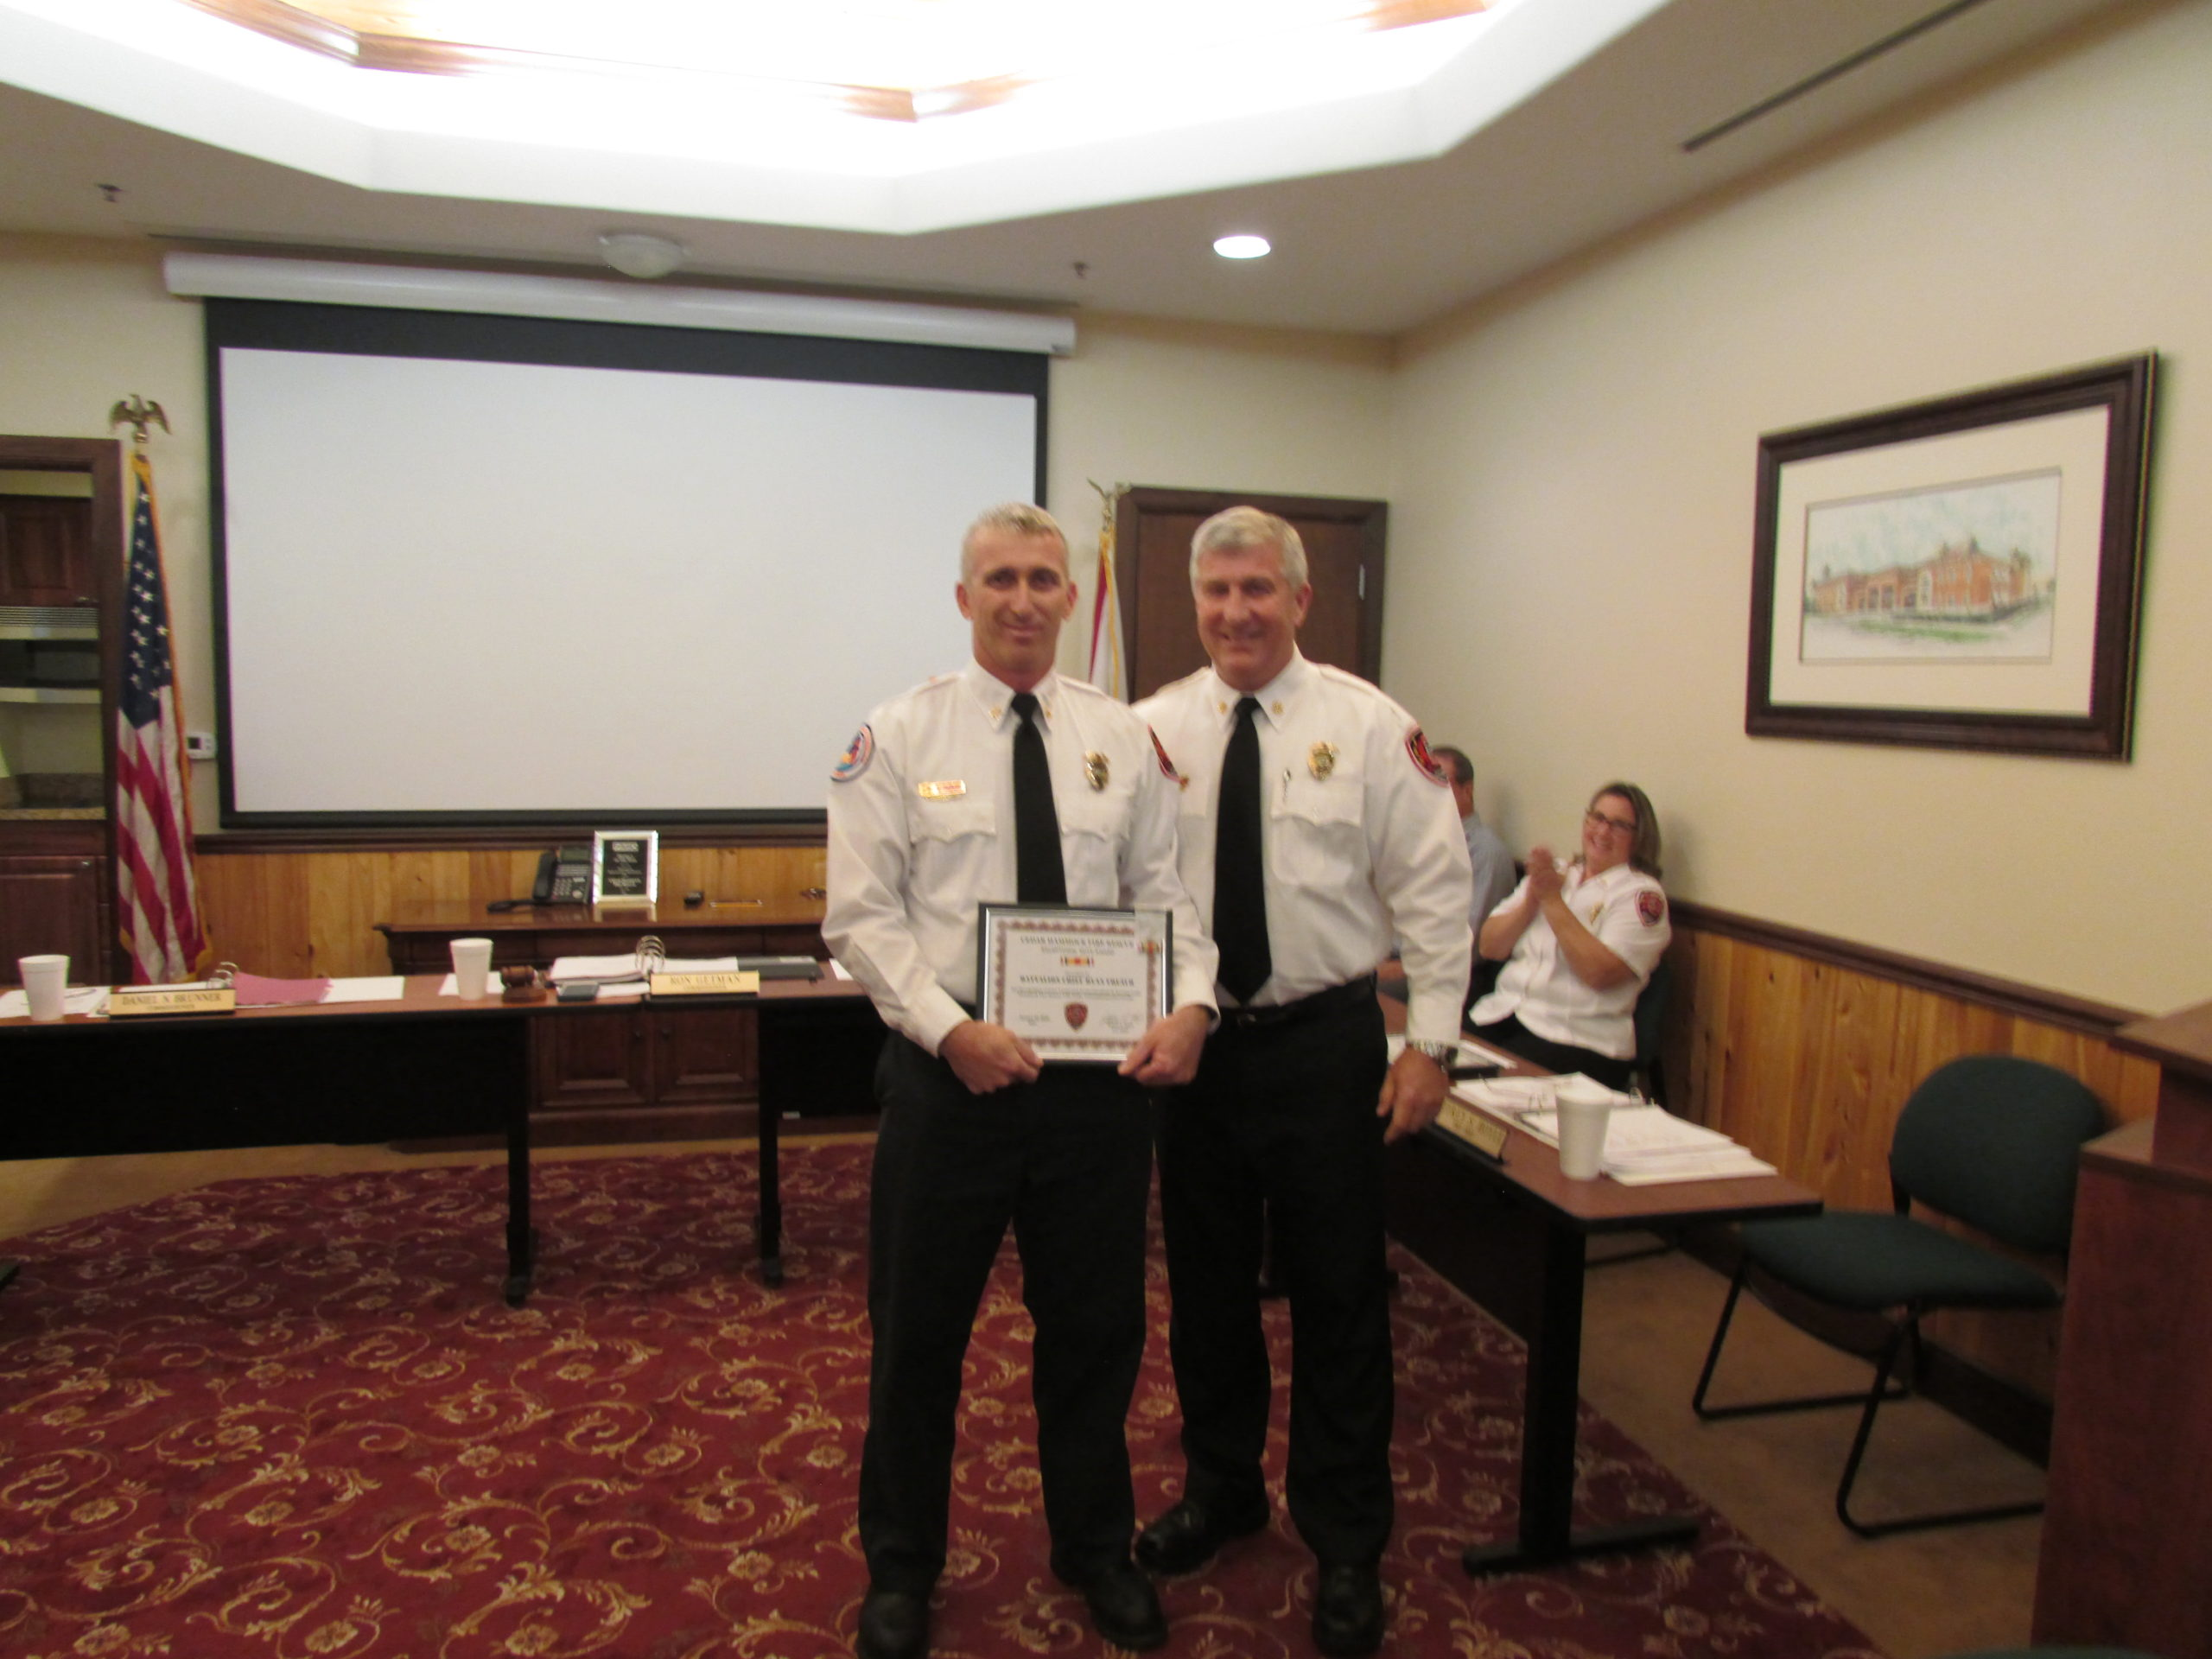 battalion chief french receiving exceptional duty award from chief hoyle